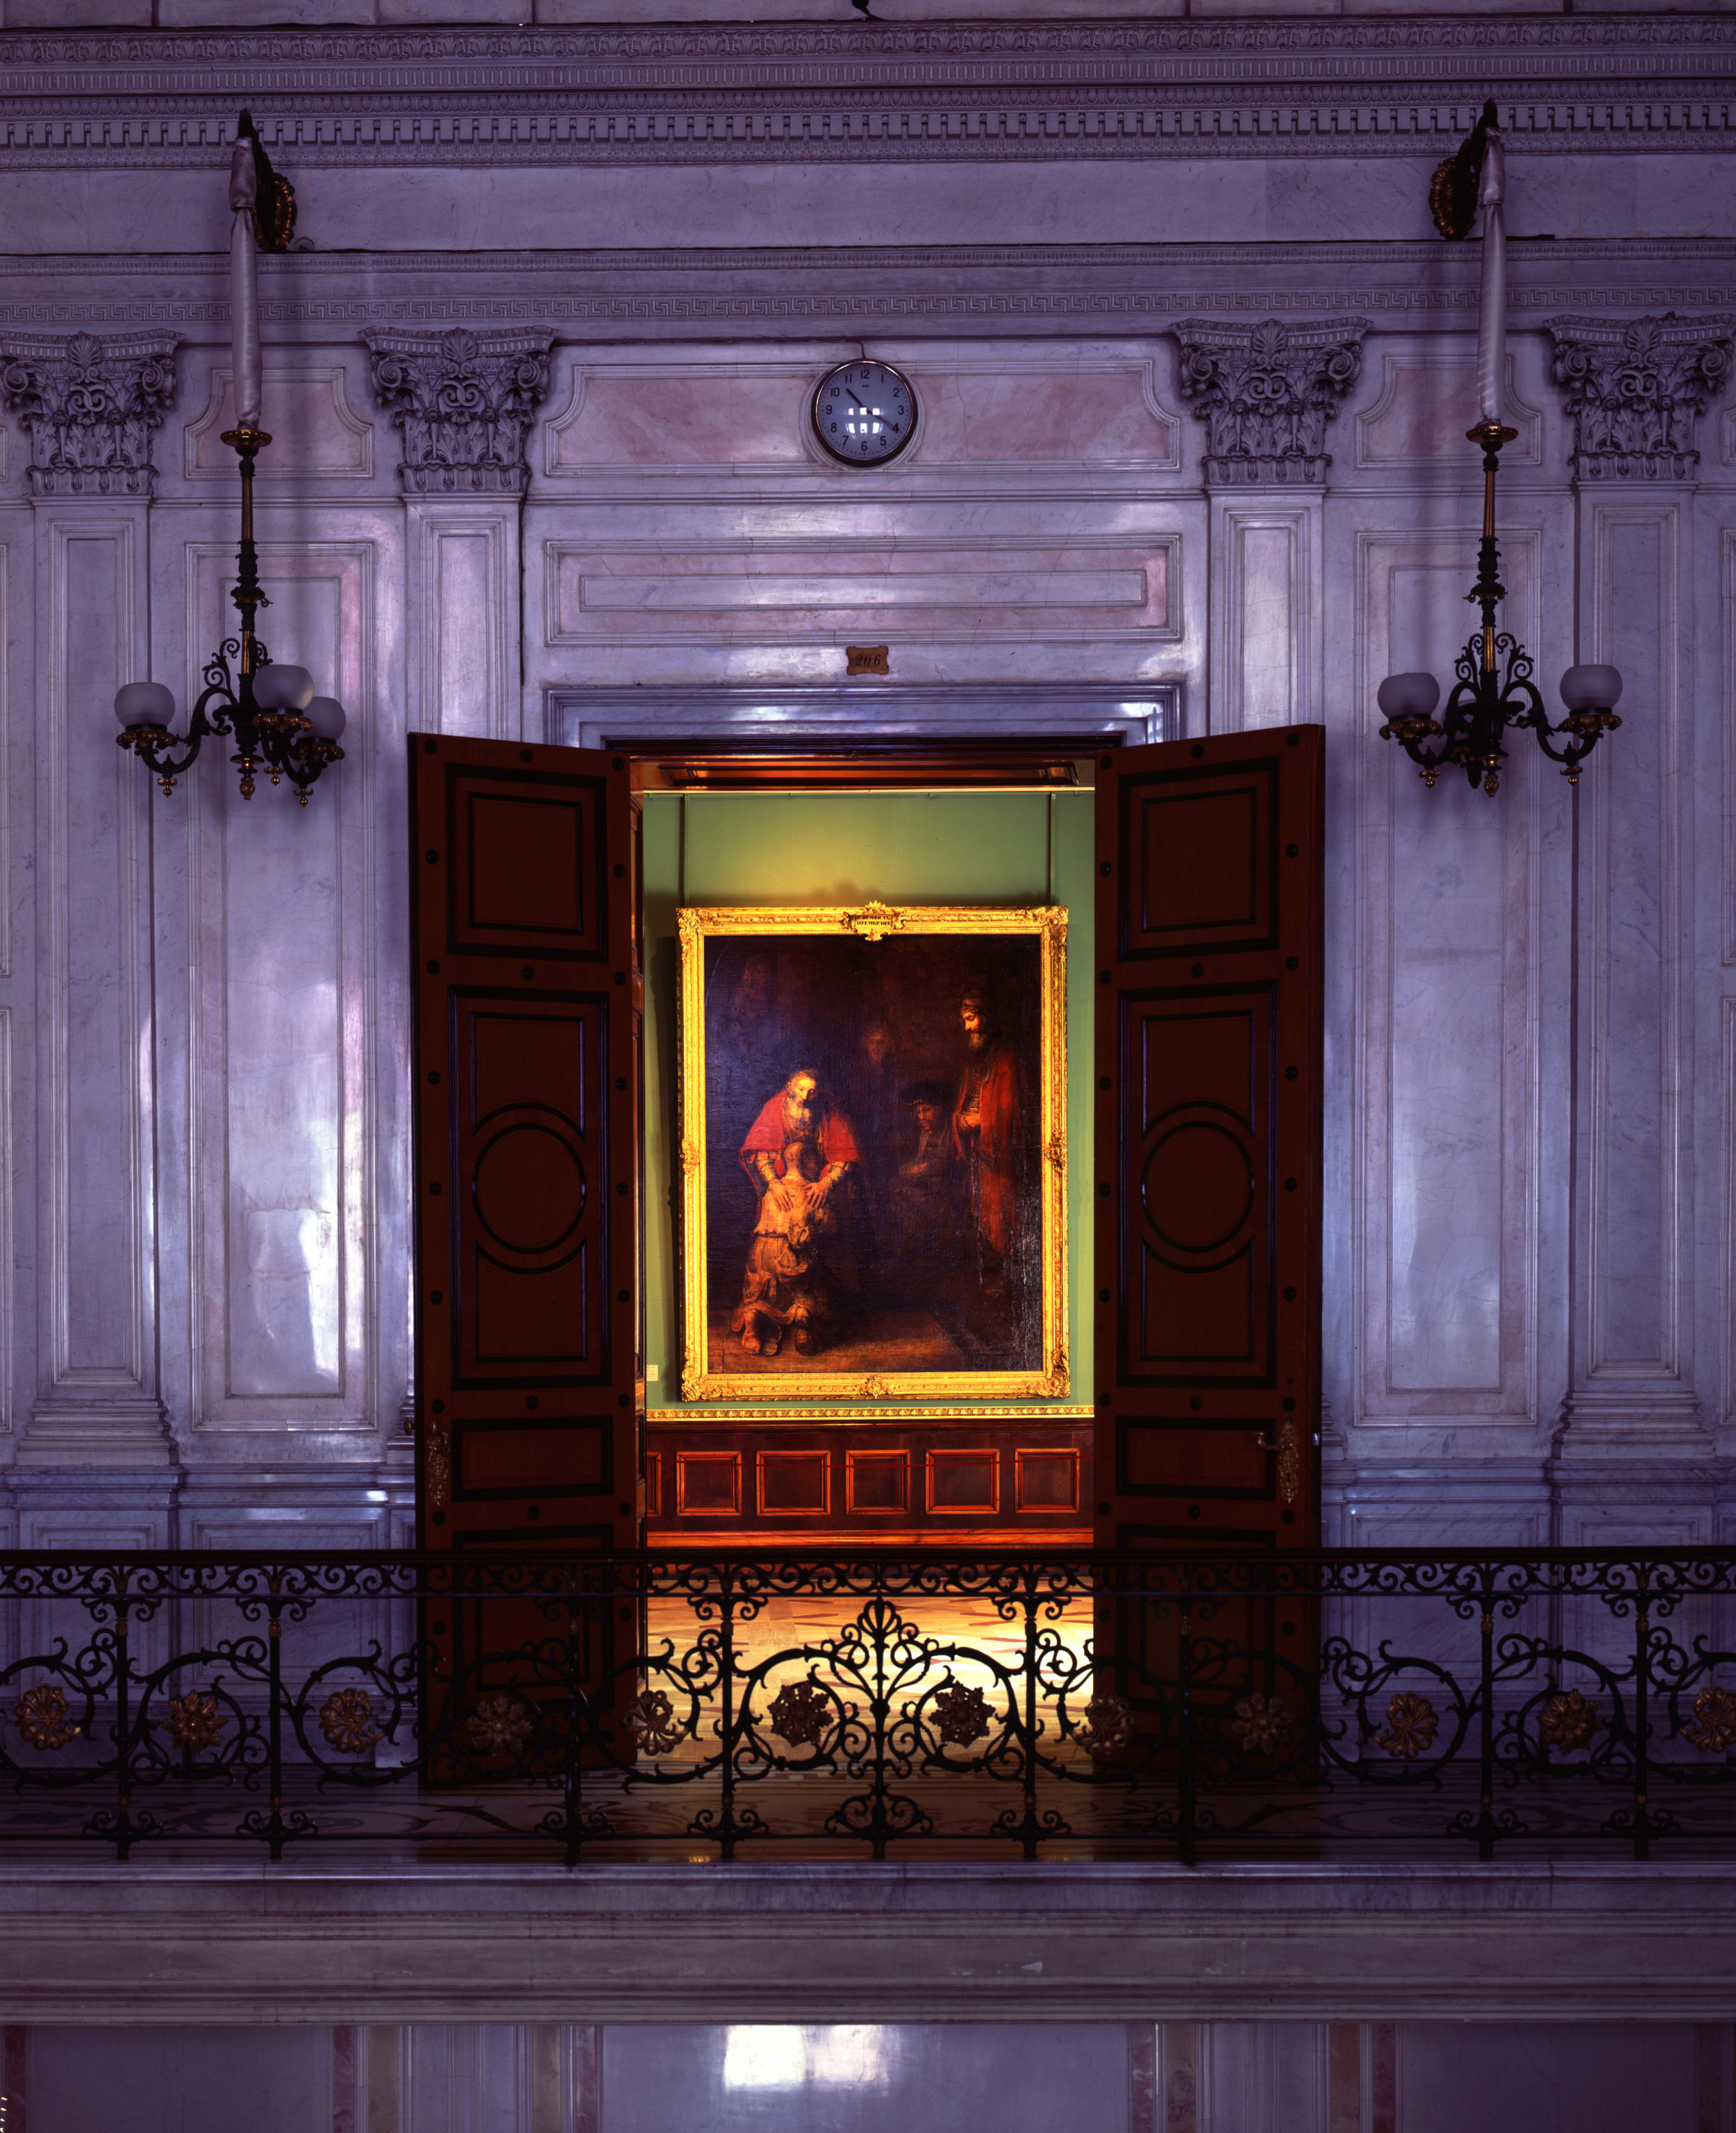 The Return of the Prodigal Son (Rembrandt), State Hermitage - Saint Petersburg , Russia (1995)